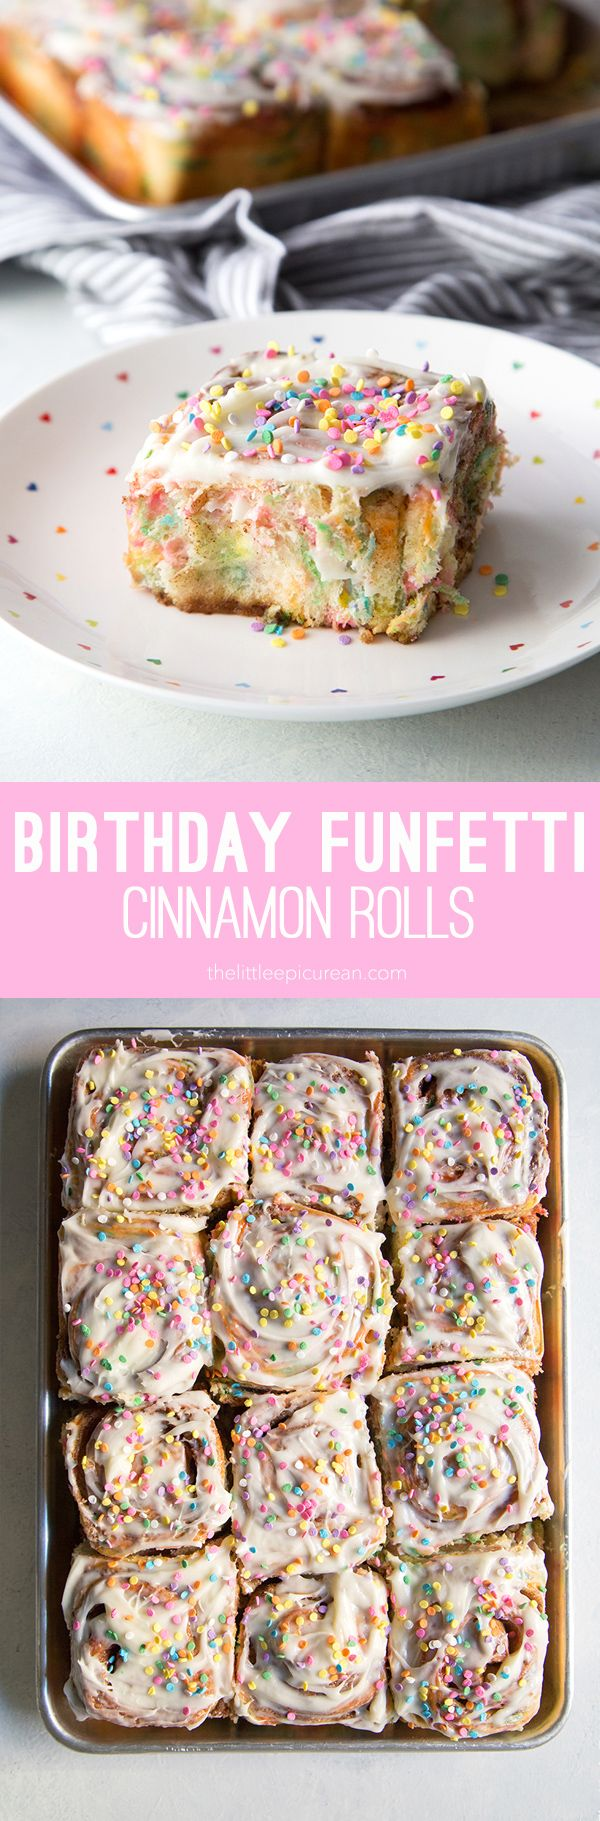 Best 10+ Boyfriend birthday ideas on Pinterest | Boyfriend ...